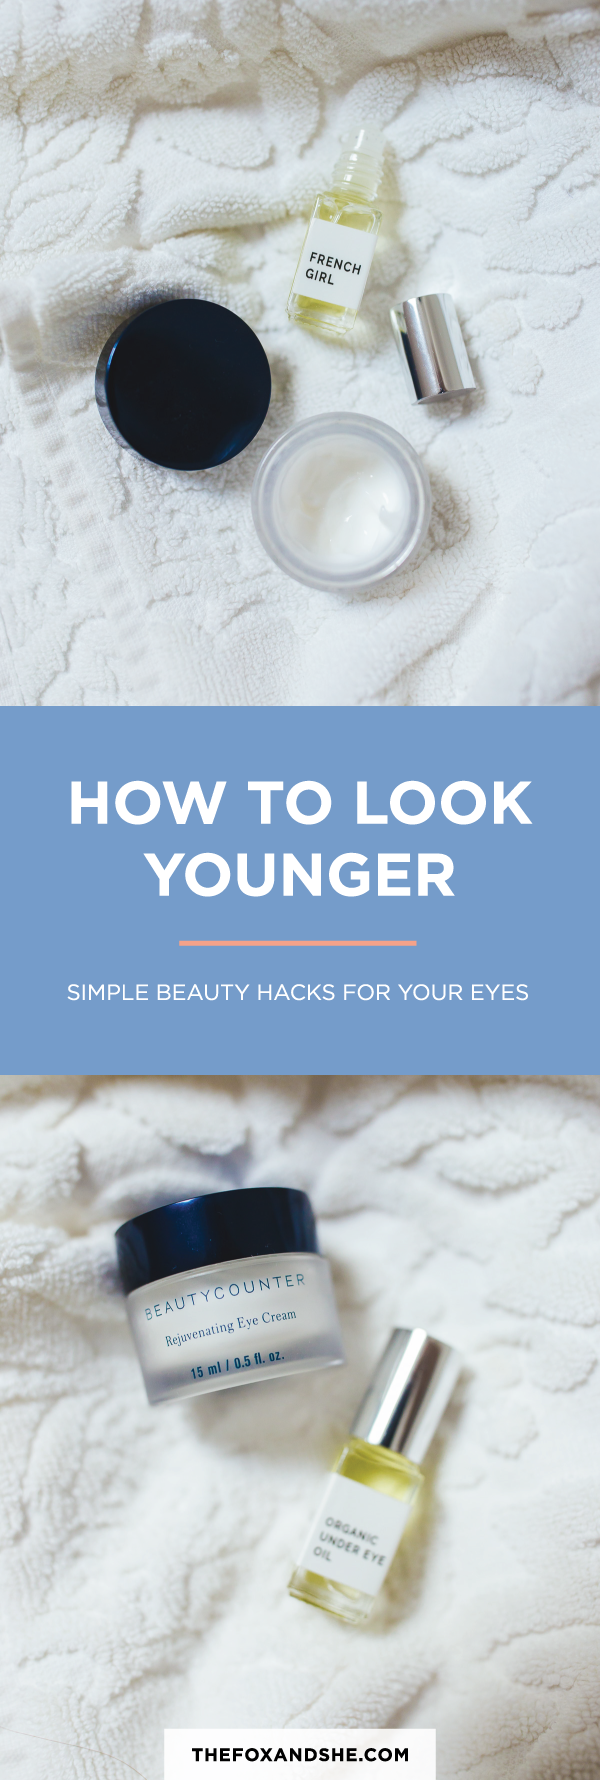 Best beauty hacks for looking younger—hint, it's starts with eye cream.